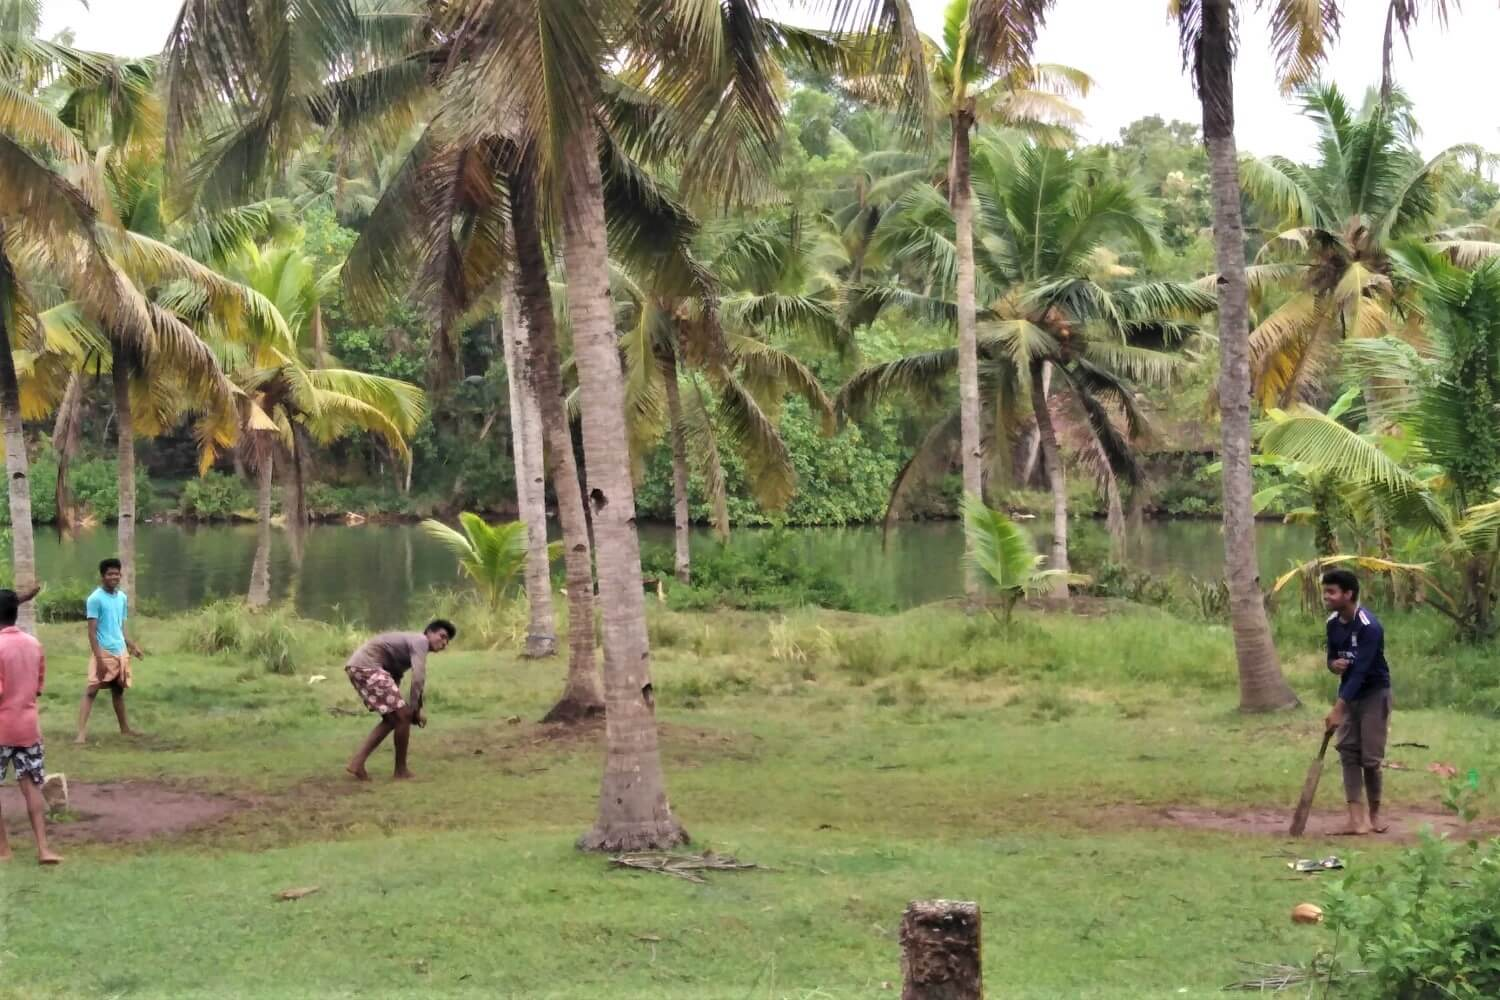 Locals playing Cricket at Munroe Island, India